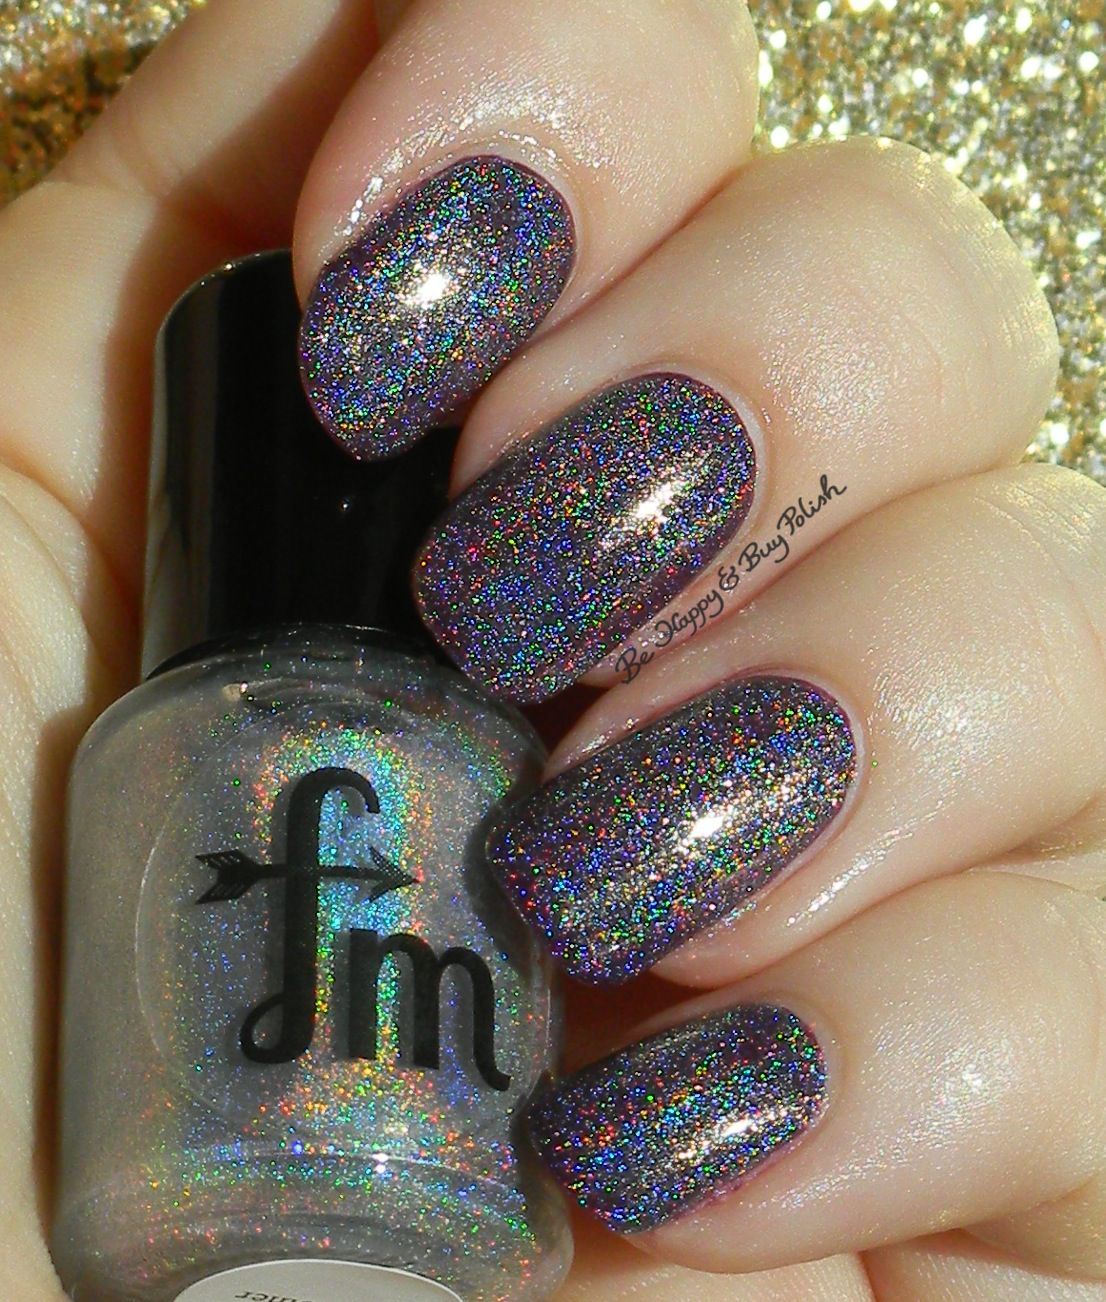 Fair Maiden Polish Fairy Godmother over OPI Skating on Thin Ice-land | Be Happy And Buy Polish http://behappyandbuypolish.com/2014/11/07/fair-maiden-polish-swatches-review/